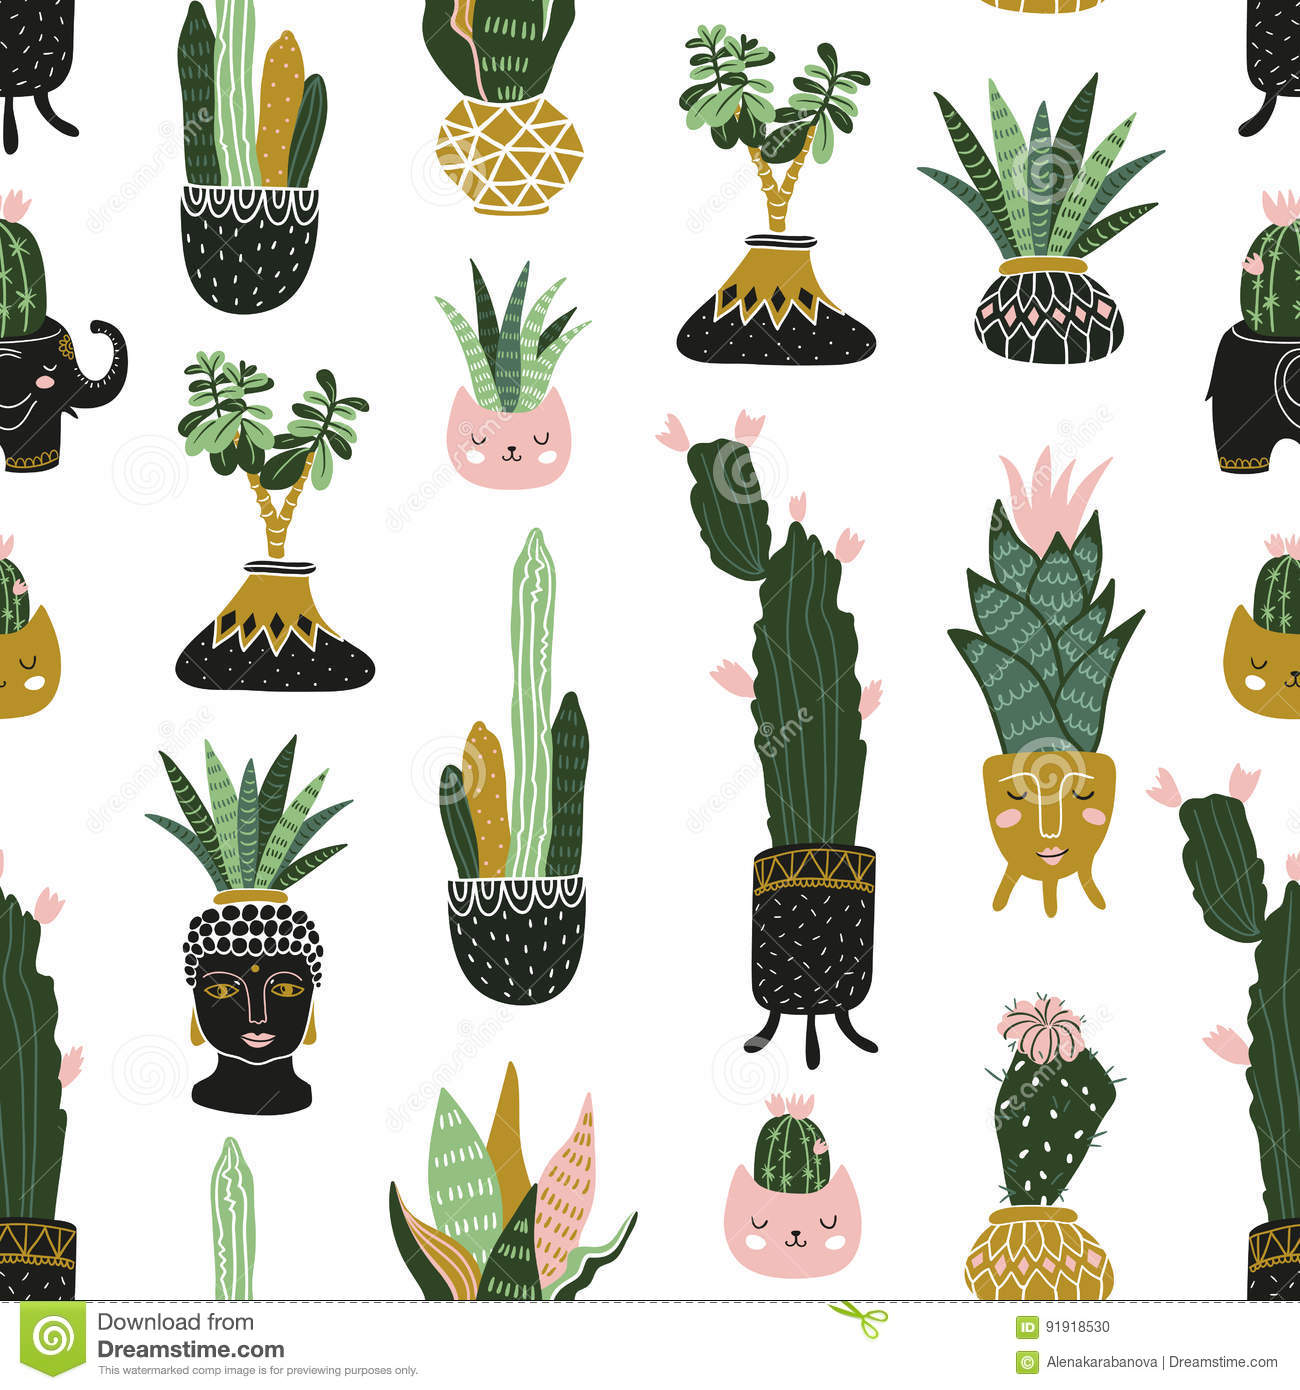 hand drawn tropical house plants. scandinavian style illustration